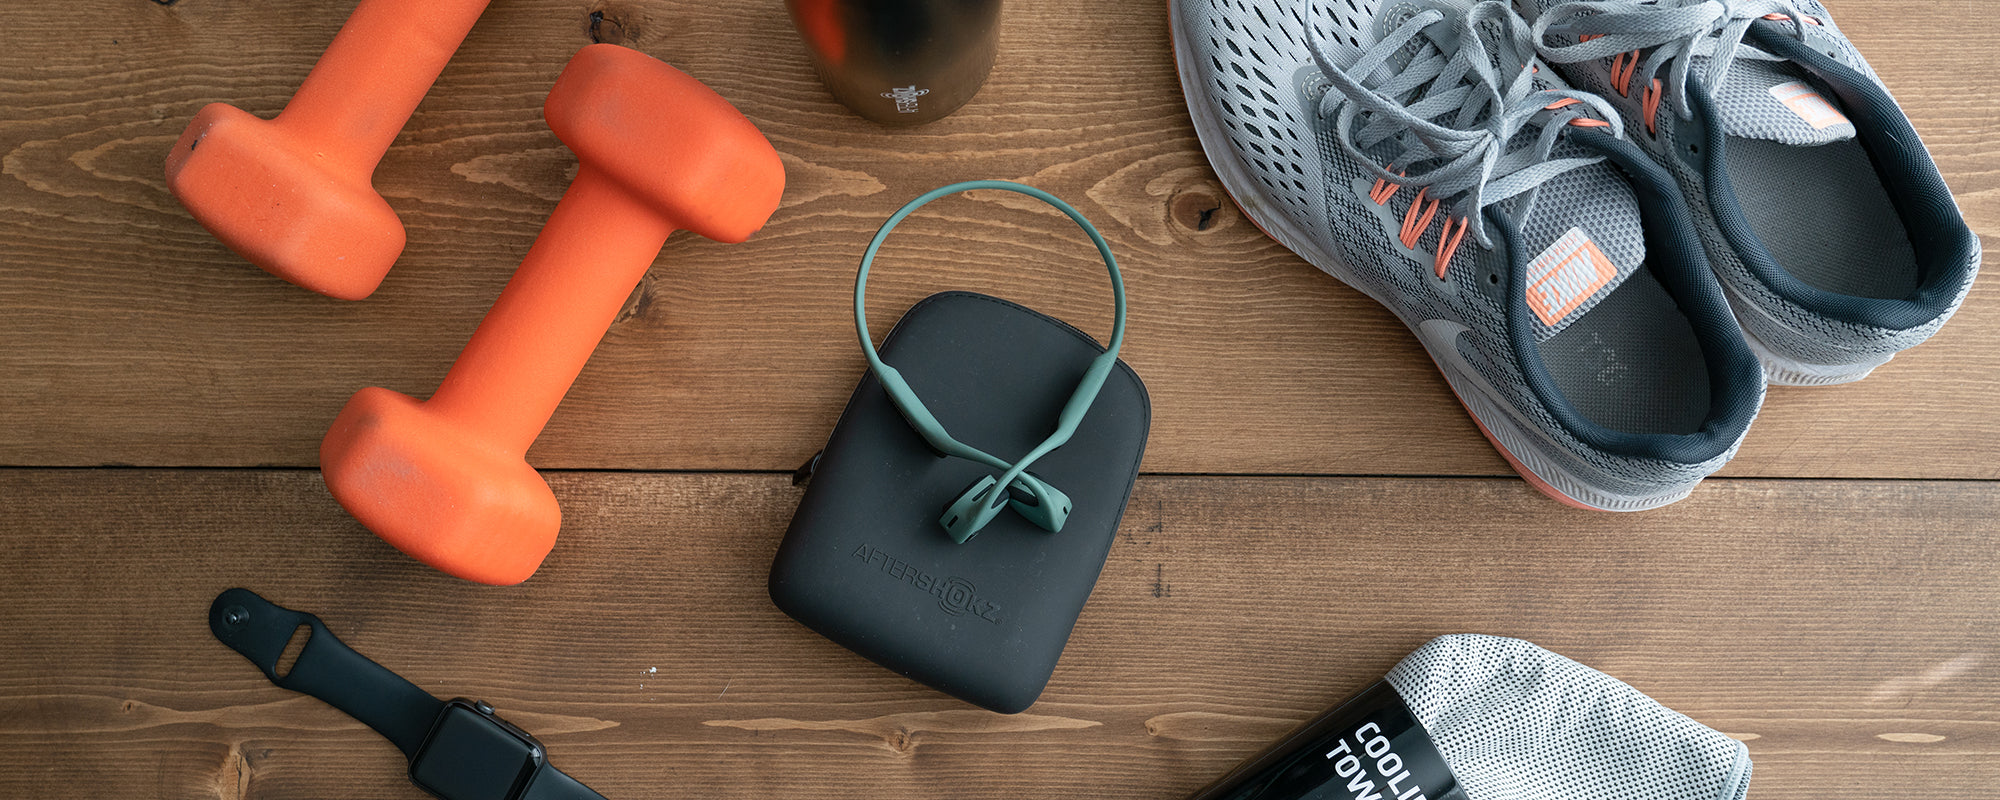 5 Essentials You Need in Your At-Home Gym